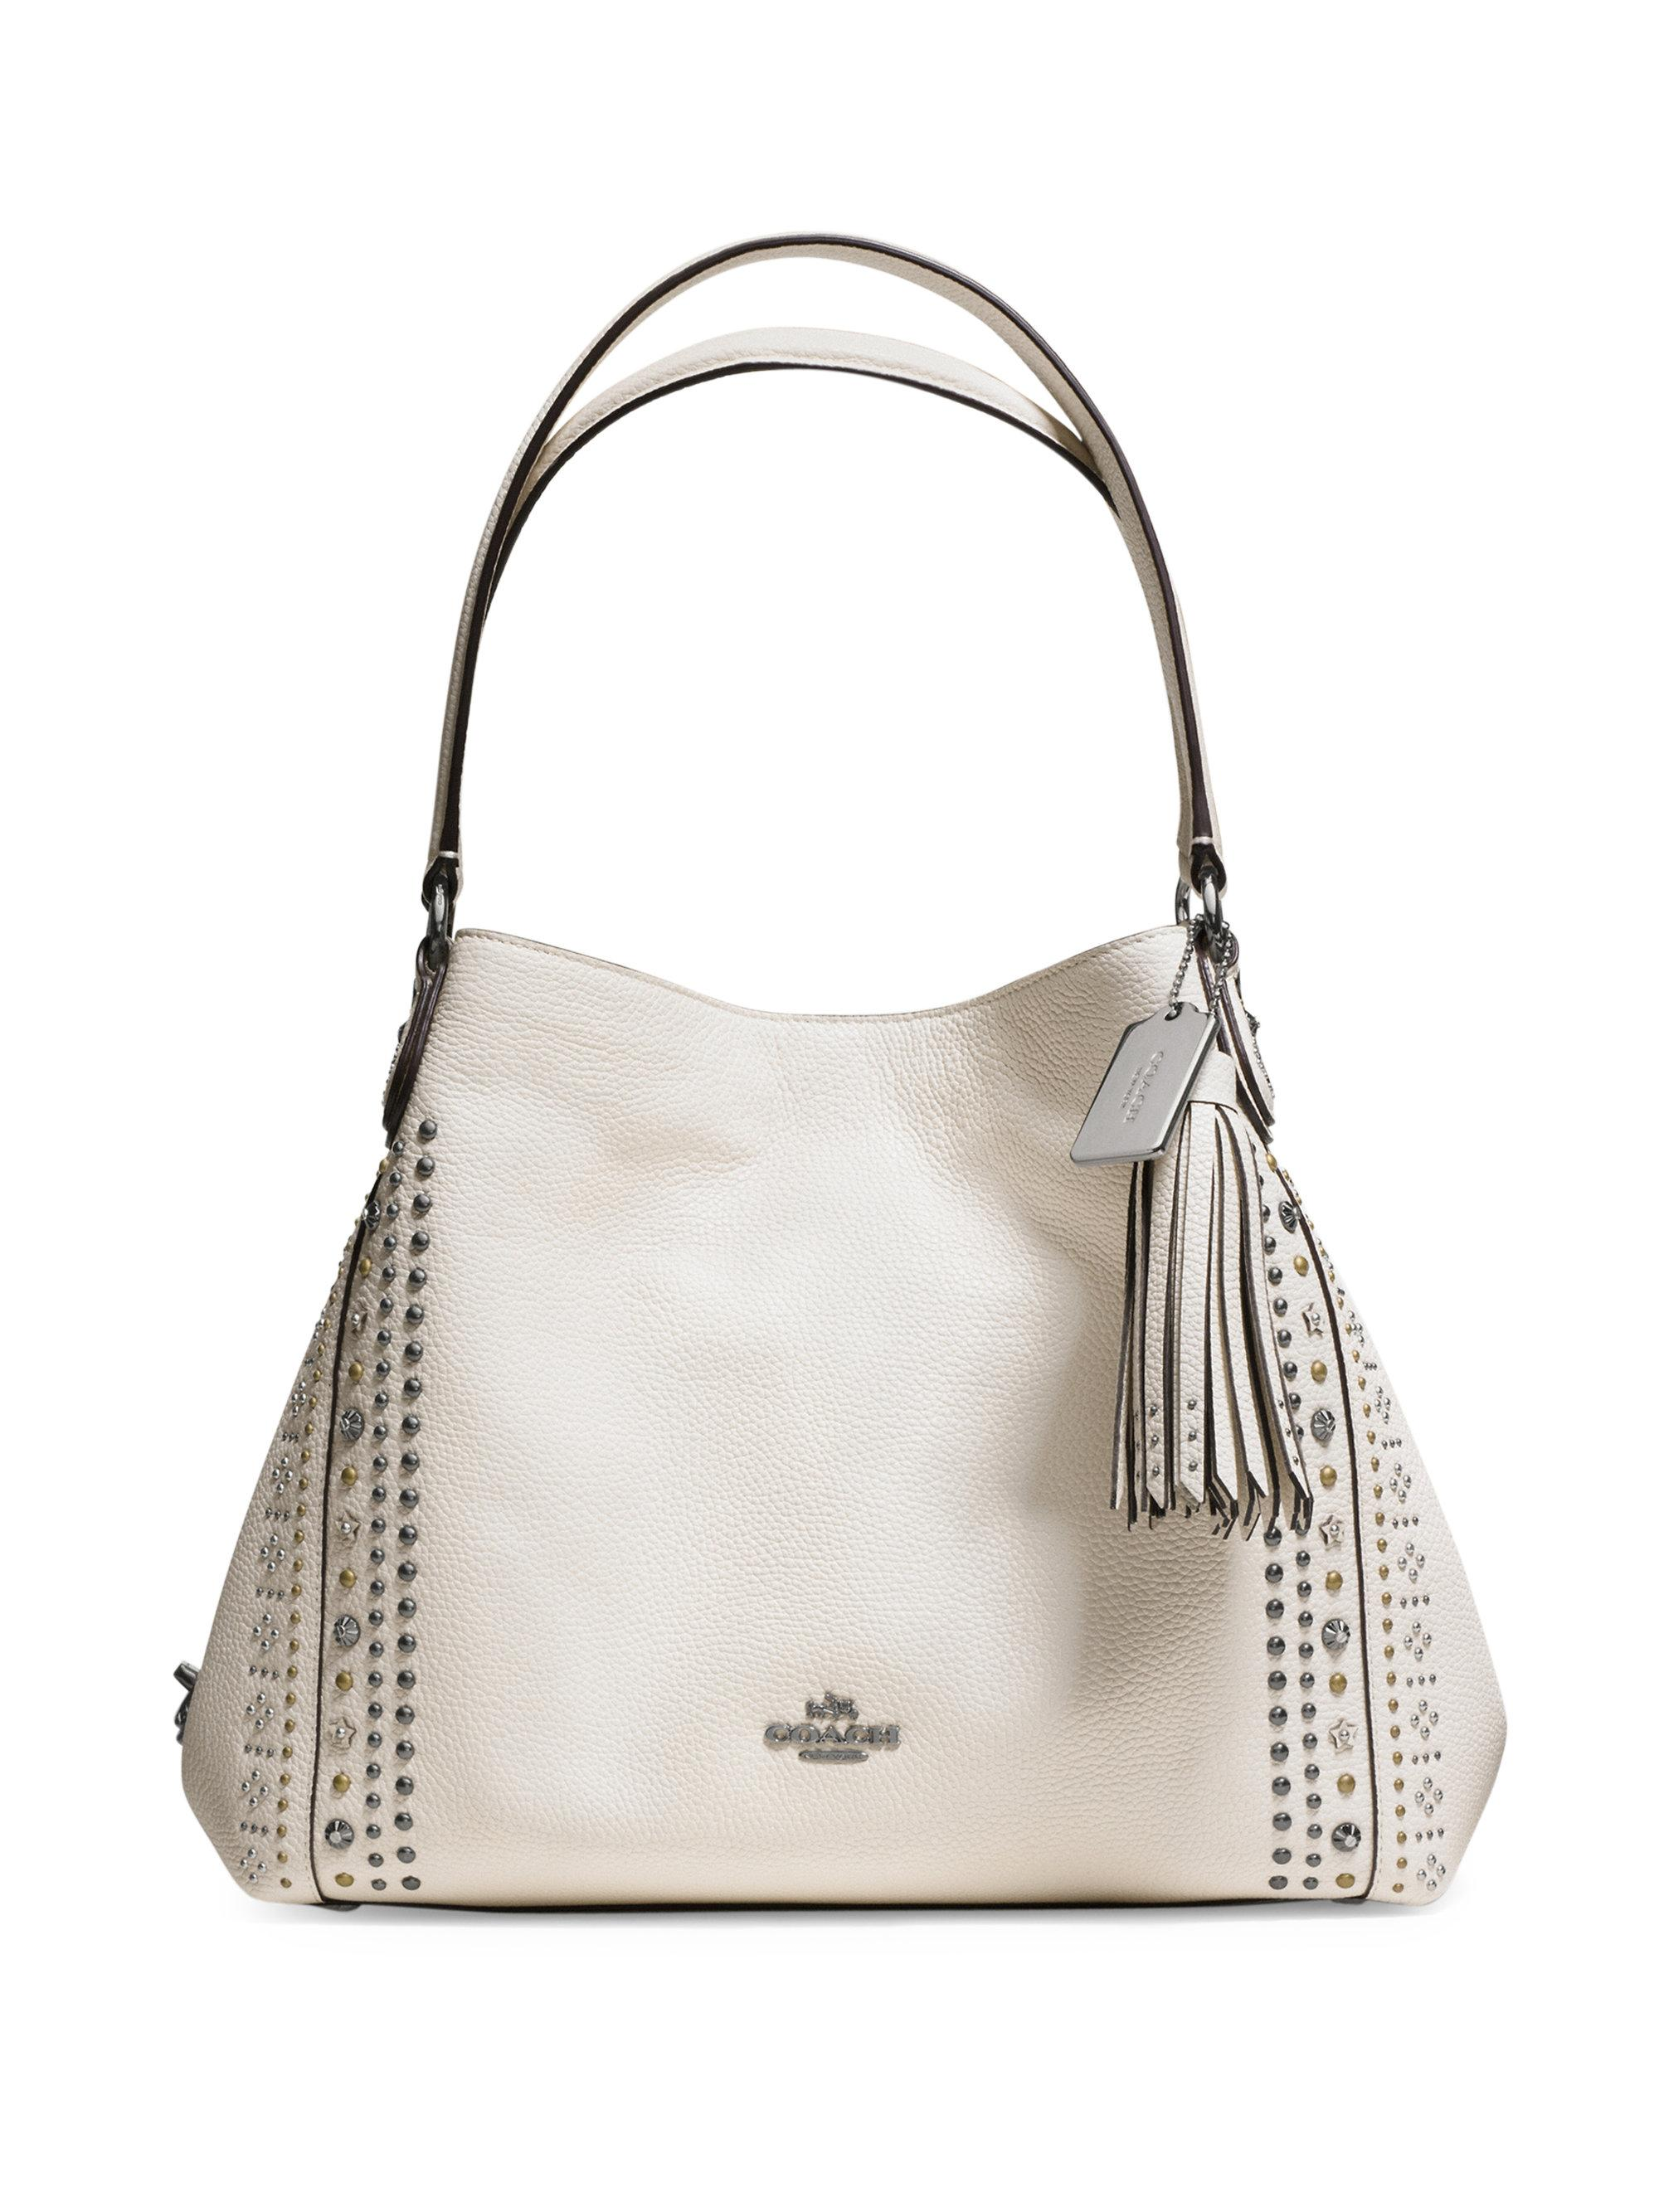 Coach Edie 31 Studded Leather Hobo Bag | Lyst